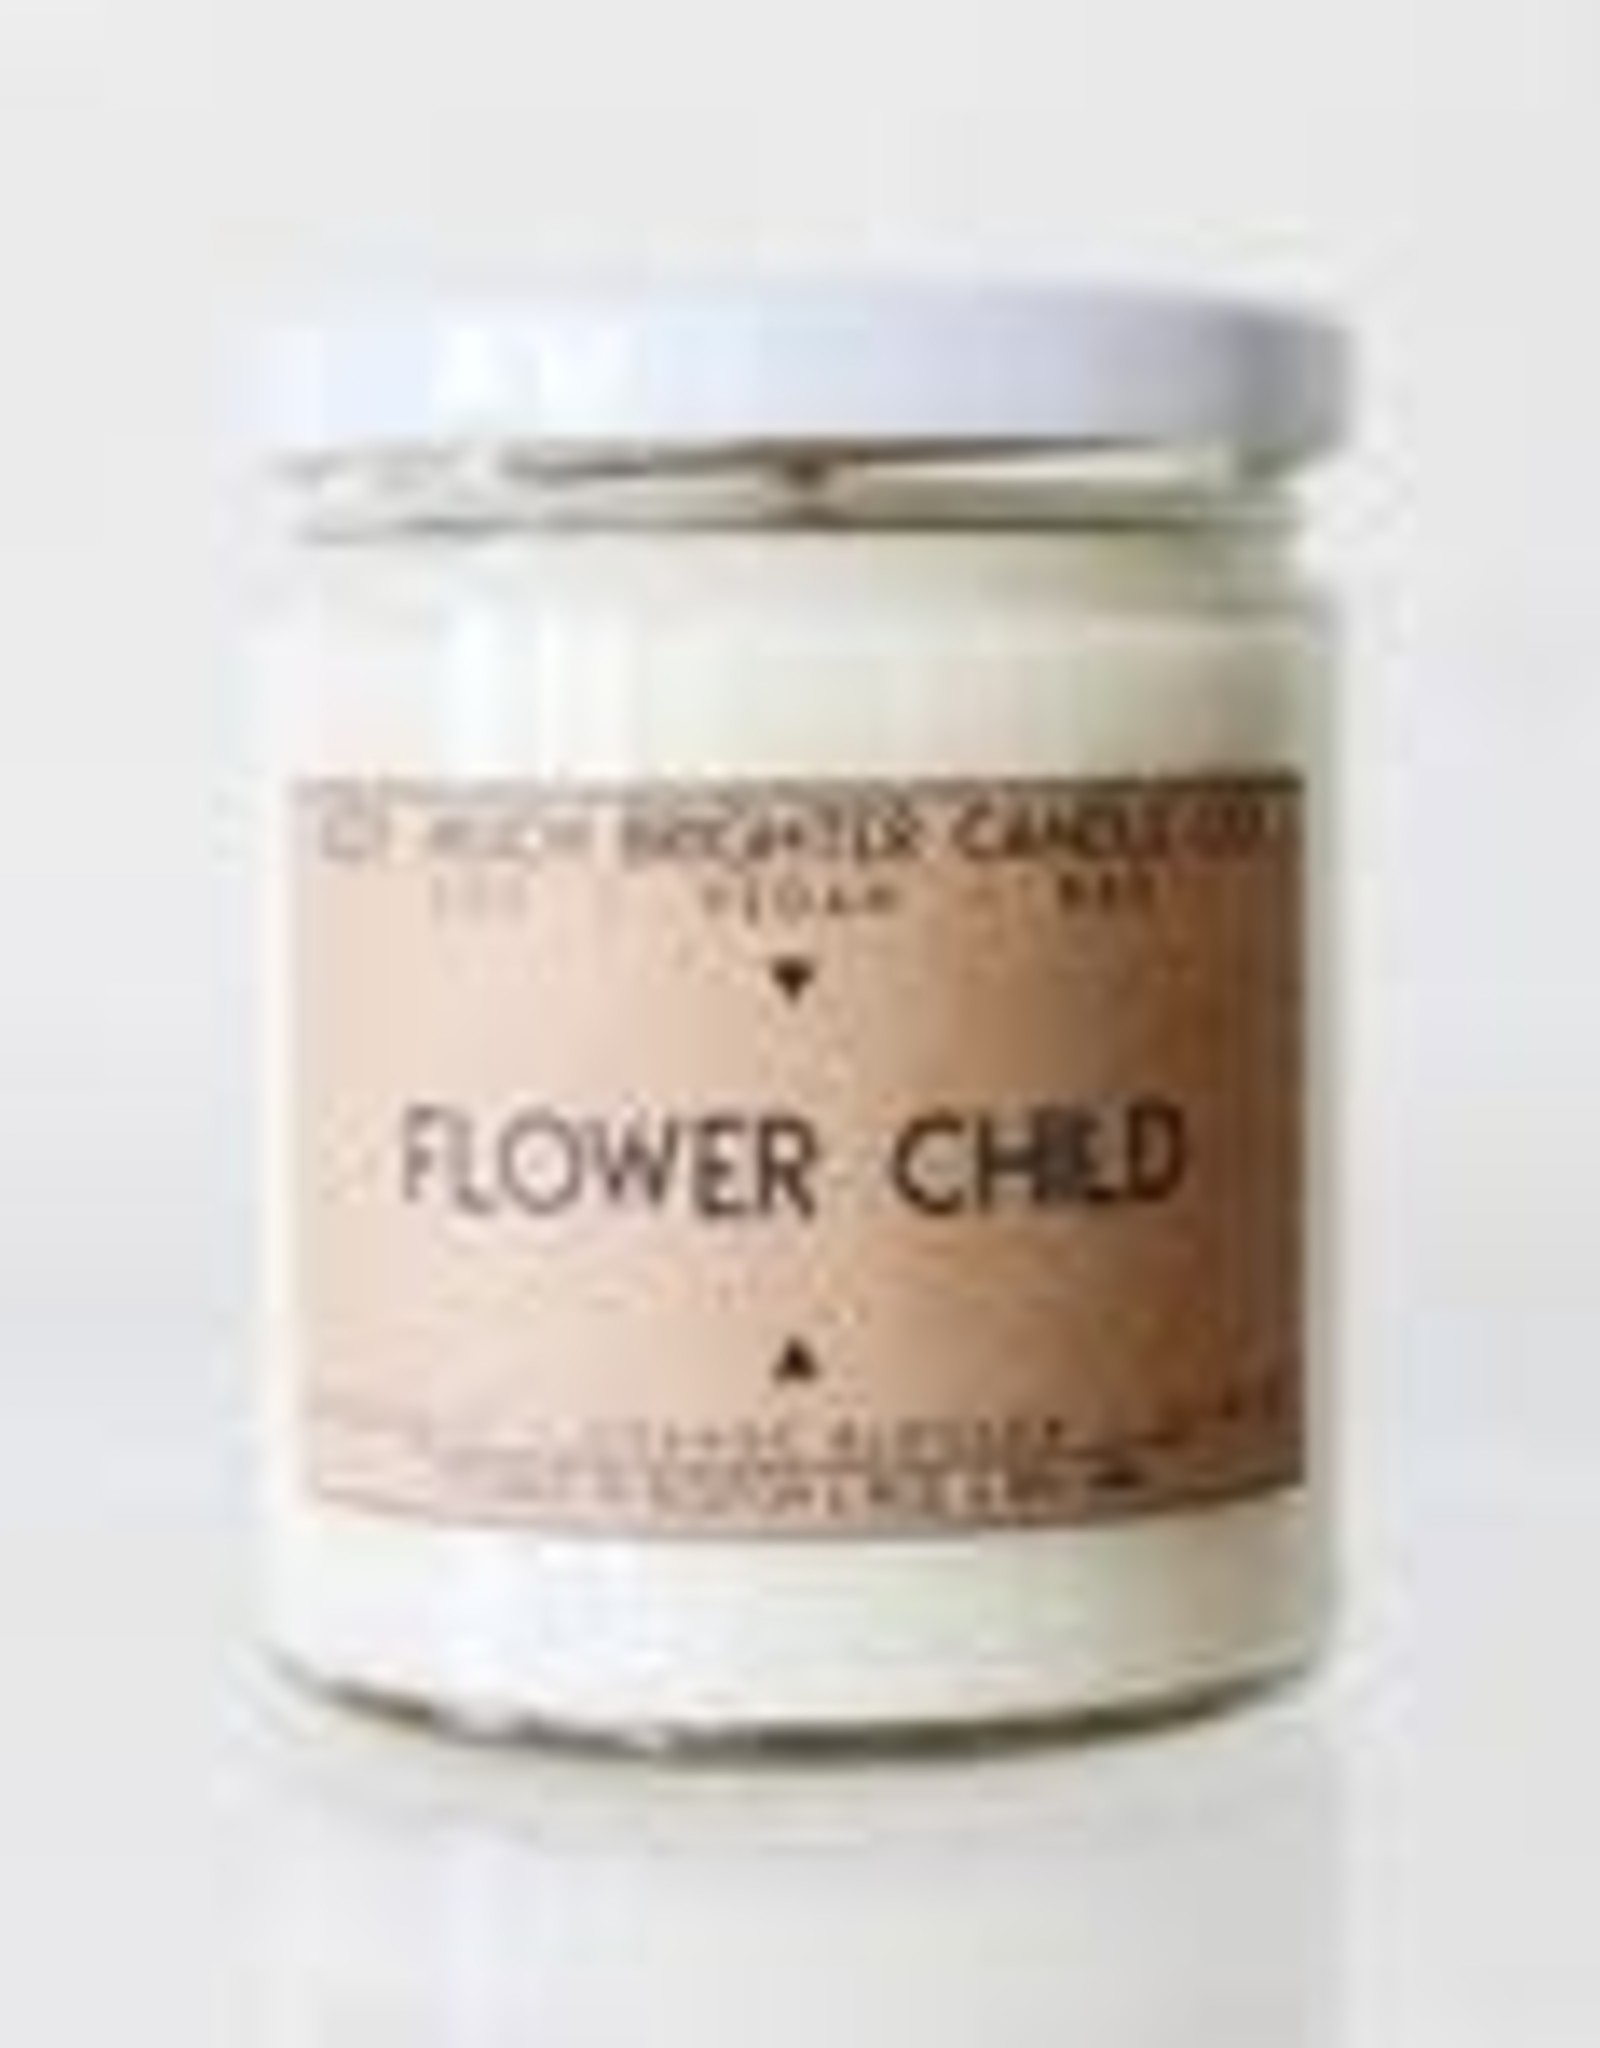 Soy Much Brighter Soy Much Brighter Candle  Flower Child 8oz